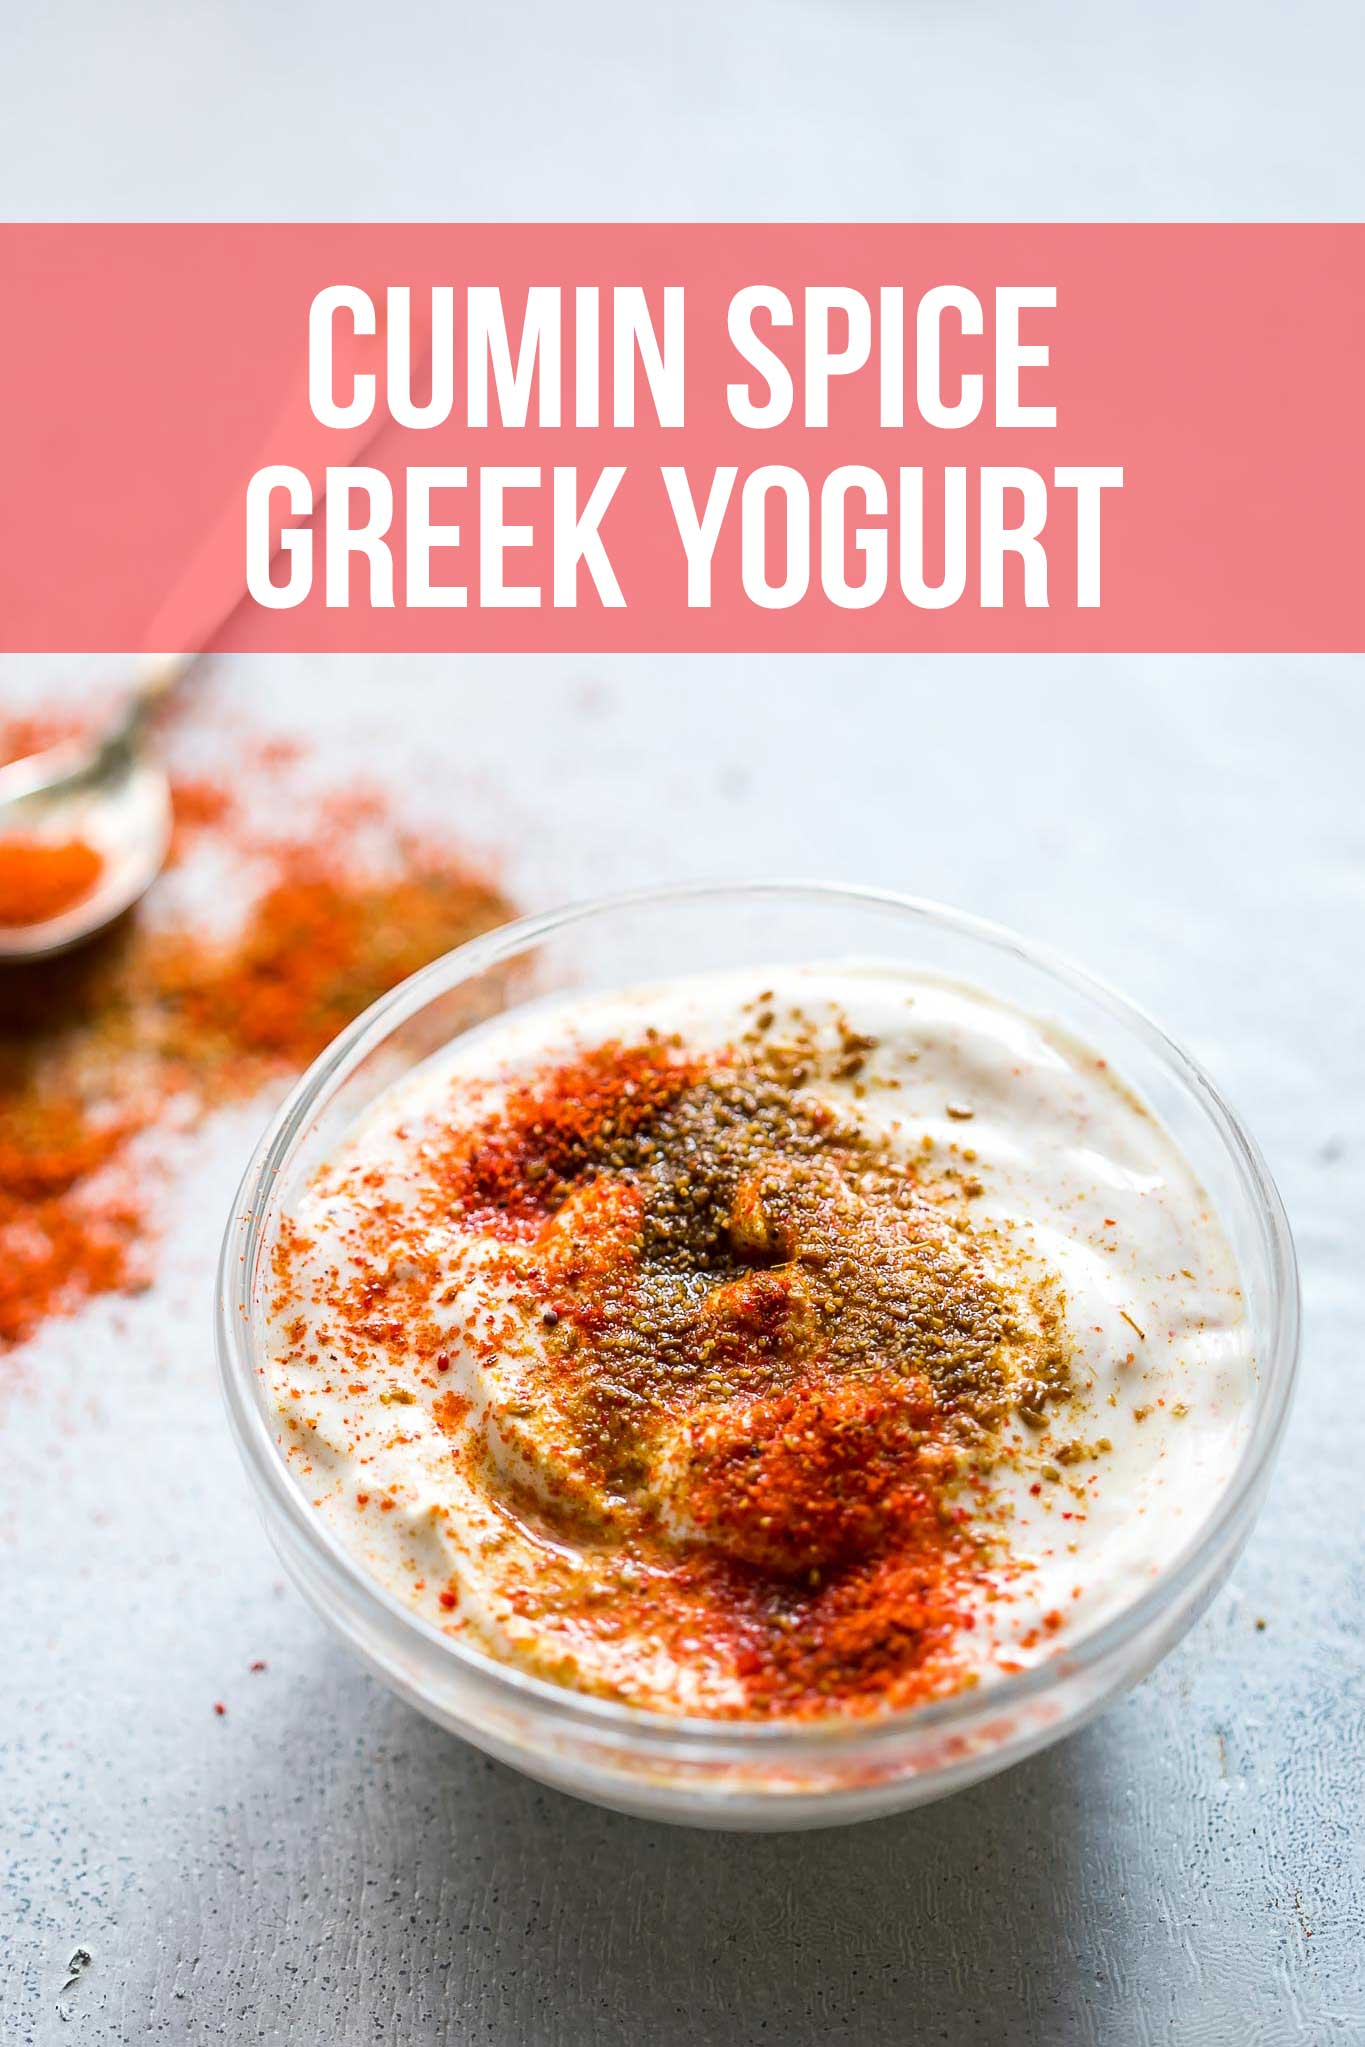 Cumin Spice Greek Yogurt is a flavor that we've grown up eating and you'll be amazed at how delicious something so simple can be. It's mildly spiced and can be great as a topping for a nourish bowl, or an after lunch snack.